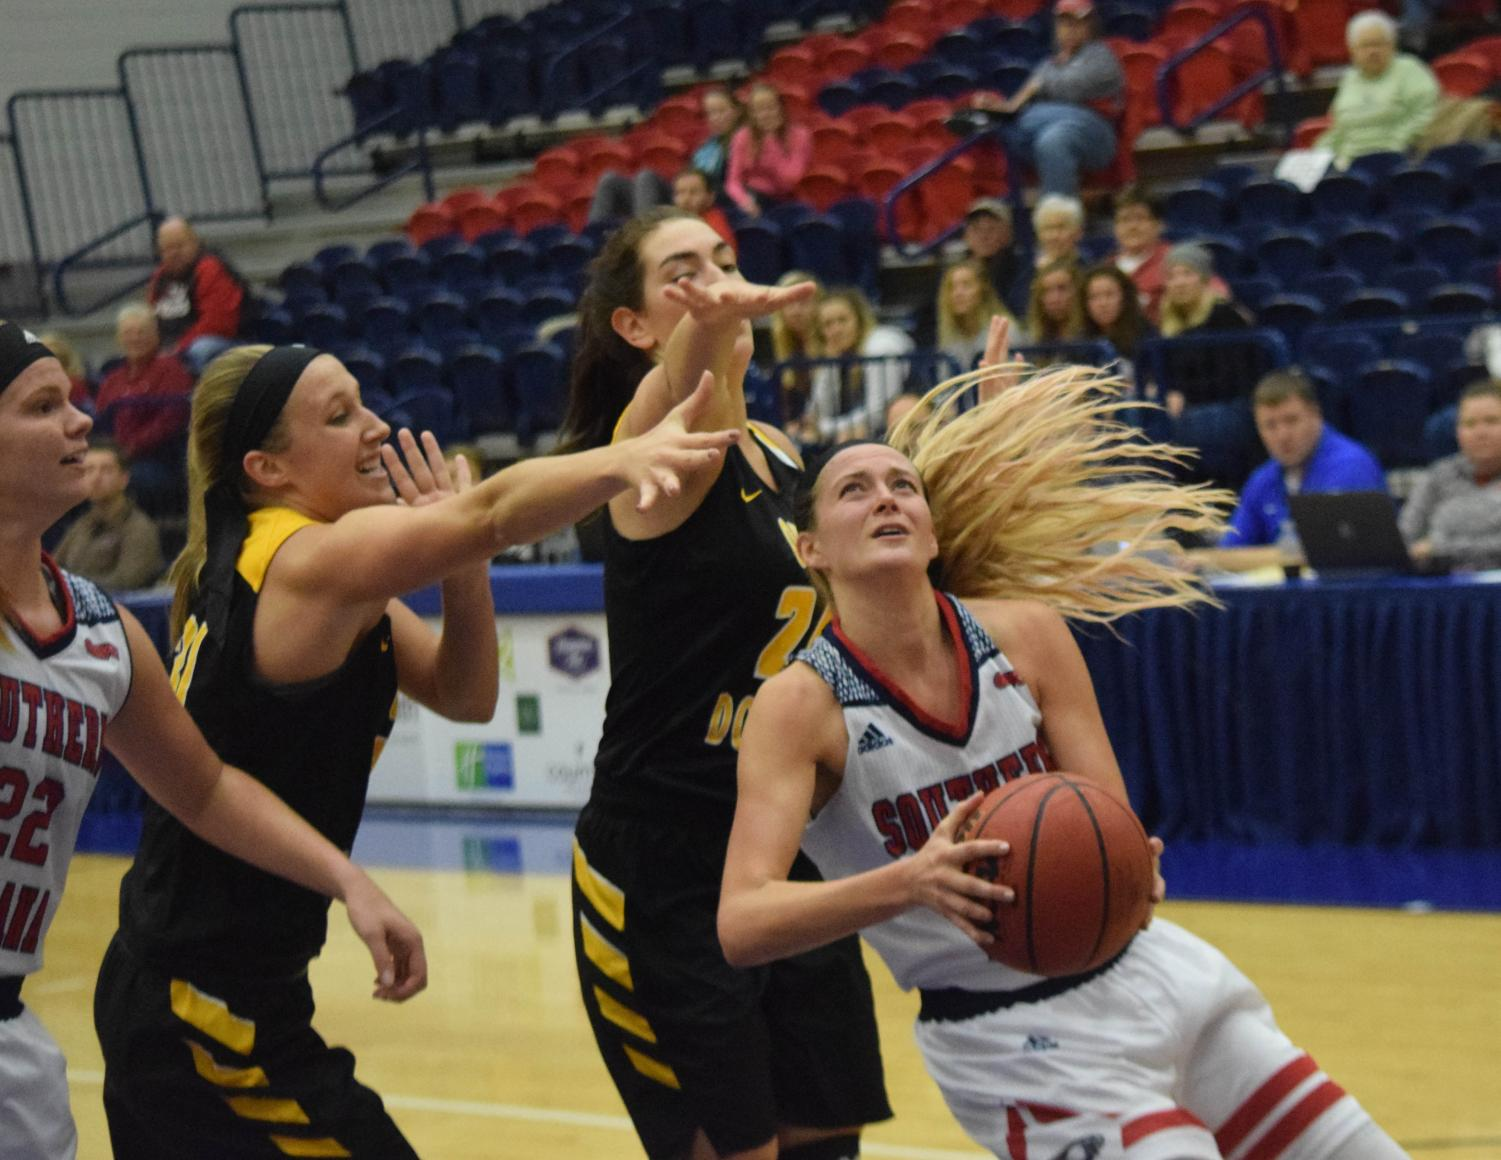 Kaydie+Grooms%2C+senior+forward%2C+powers+herself+to+the+basket+for+a+layup.